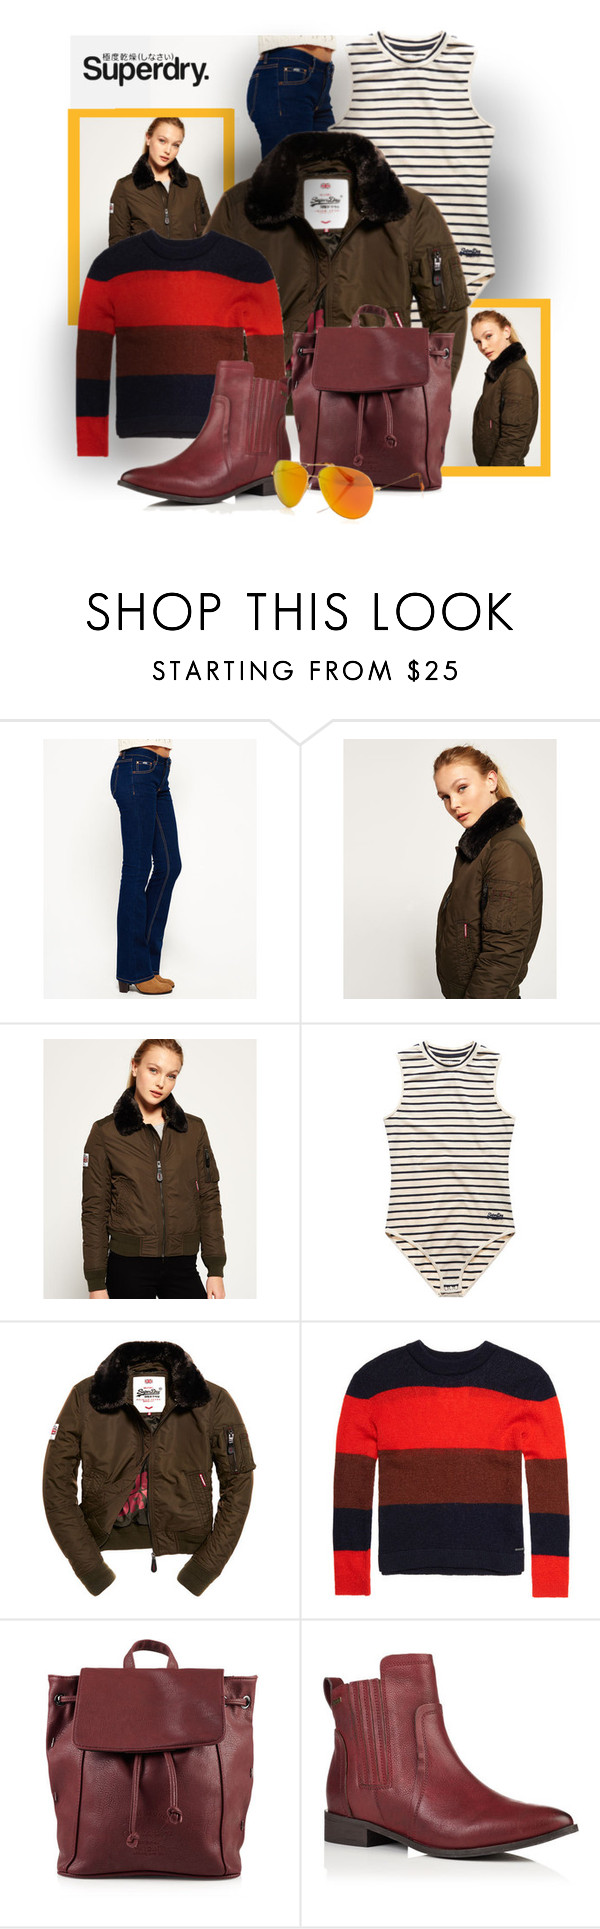 """""""Superdry. Cool."""" by interesting-times ❤ liked on Polyvore featuring Superdry and MySuperdry"""